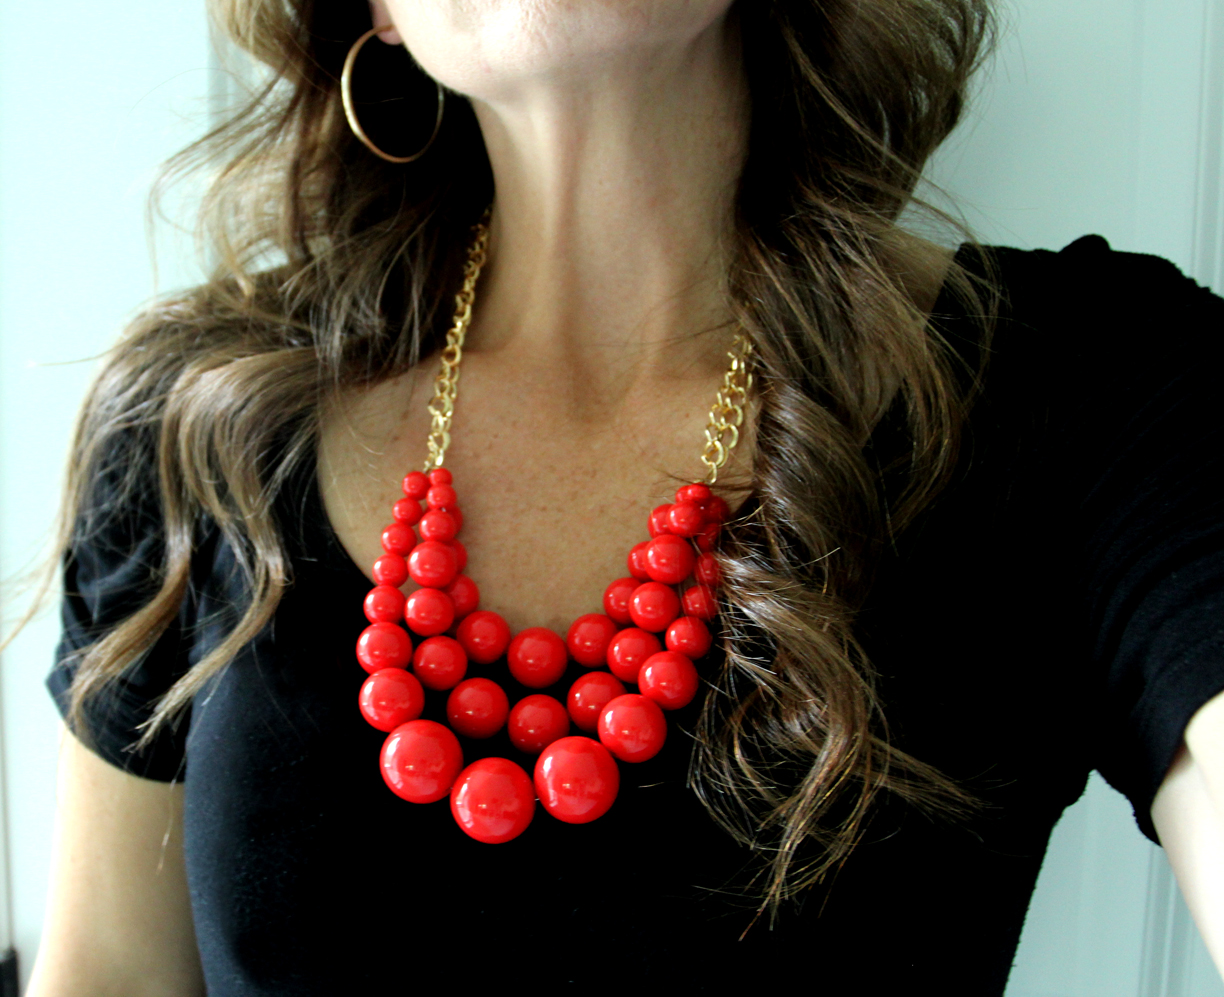 How to Make a Beaded Statement Necklace {And How Not to} | Less ...